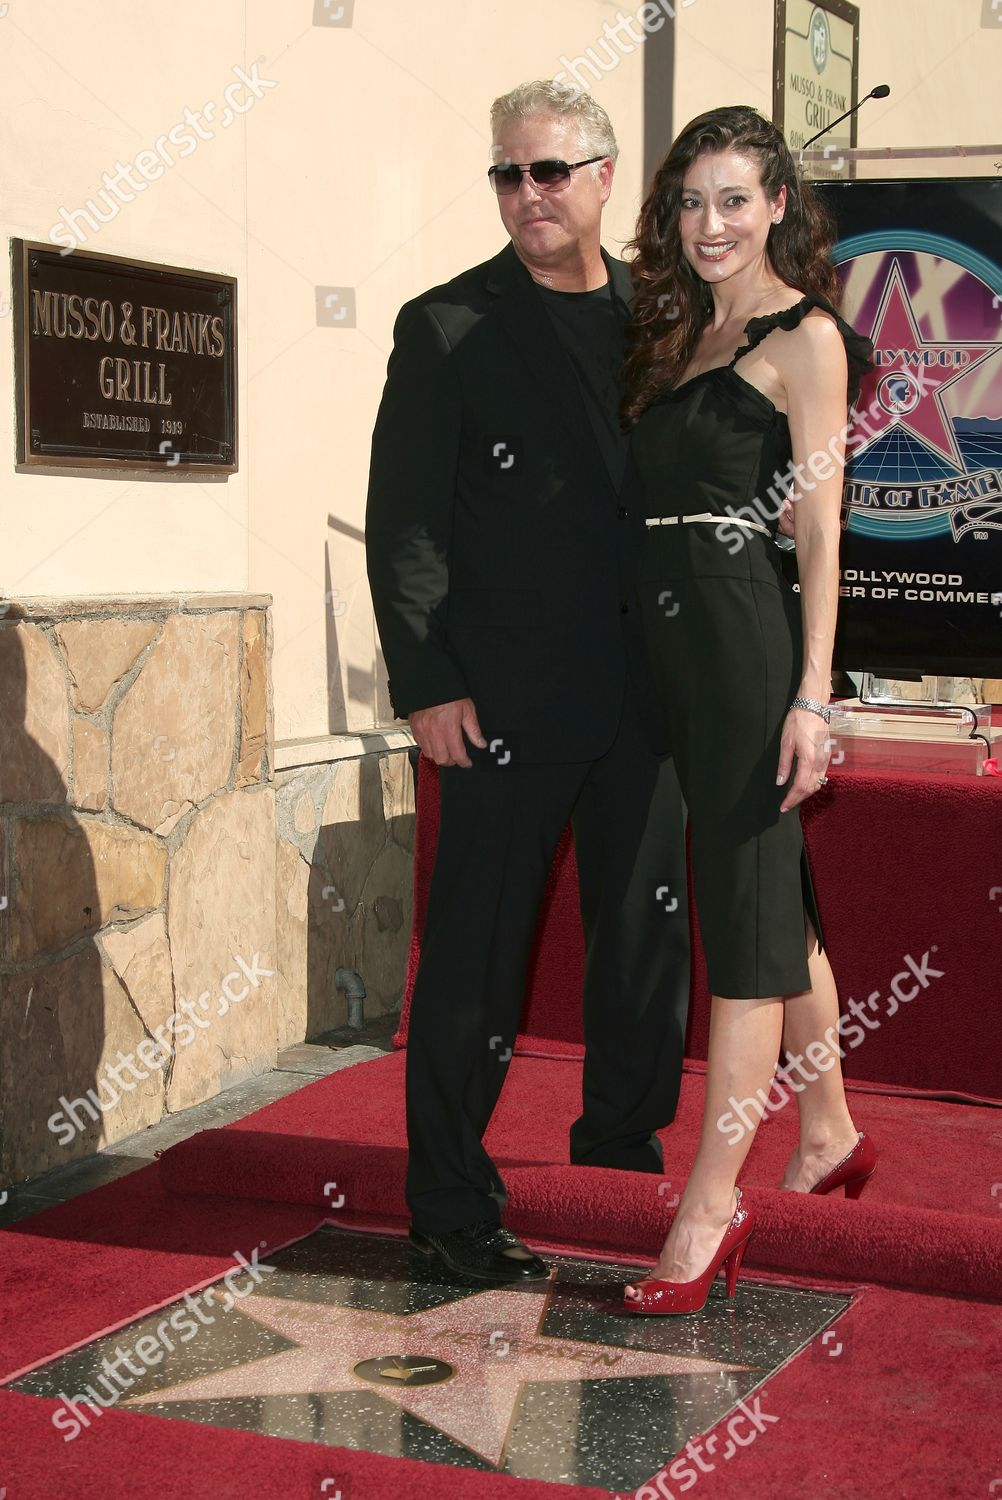 sister-sex-pictures-of-william-petersen-and-wife